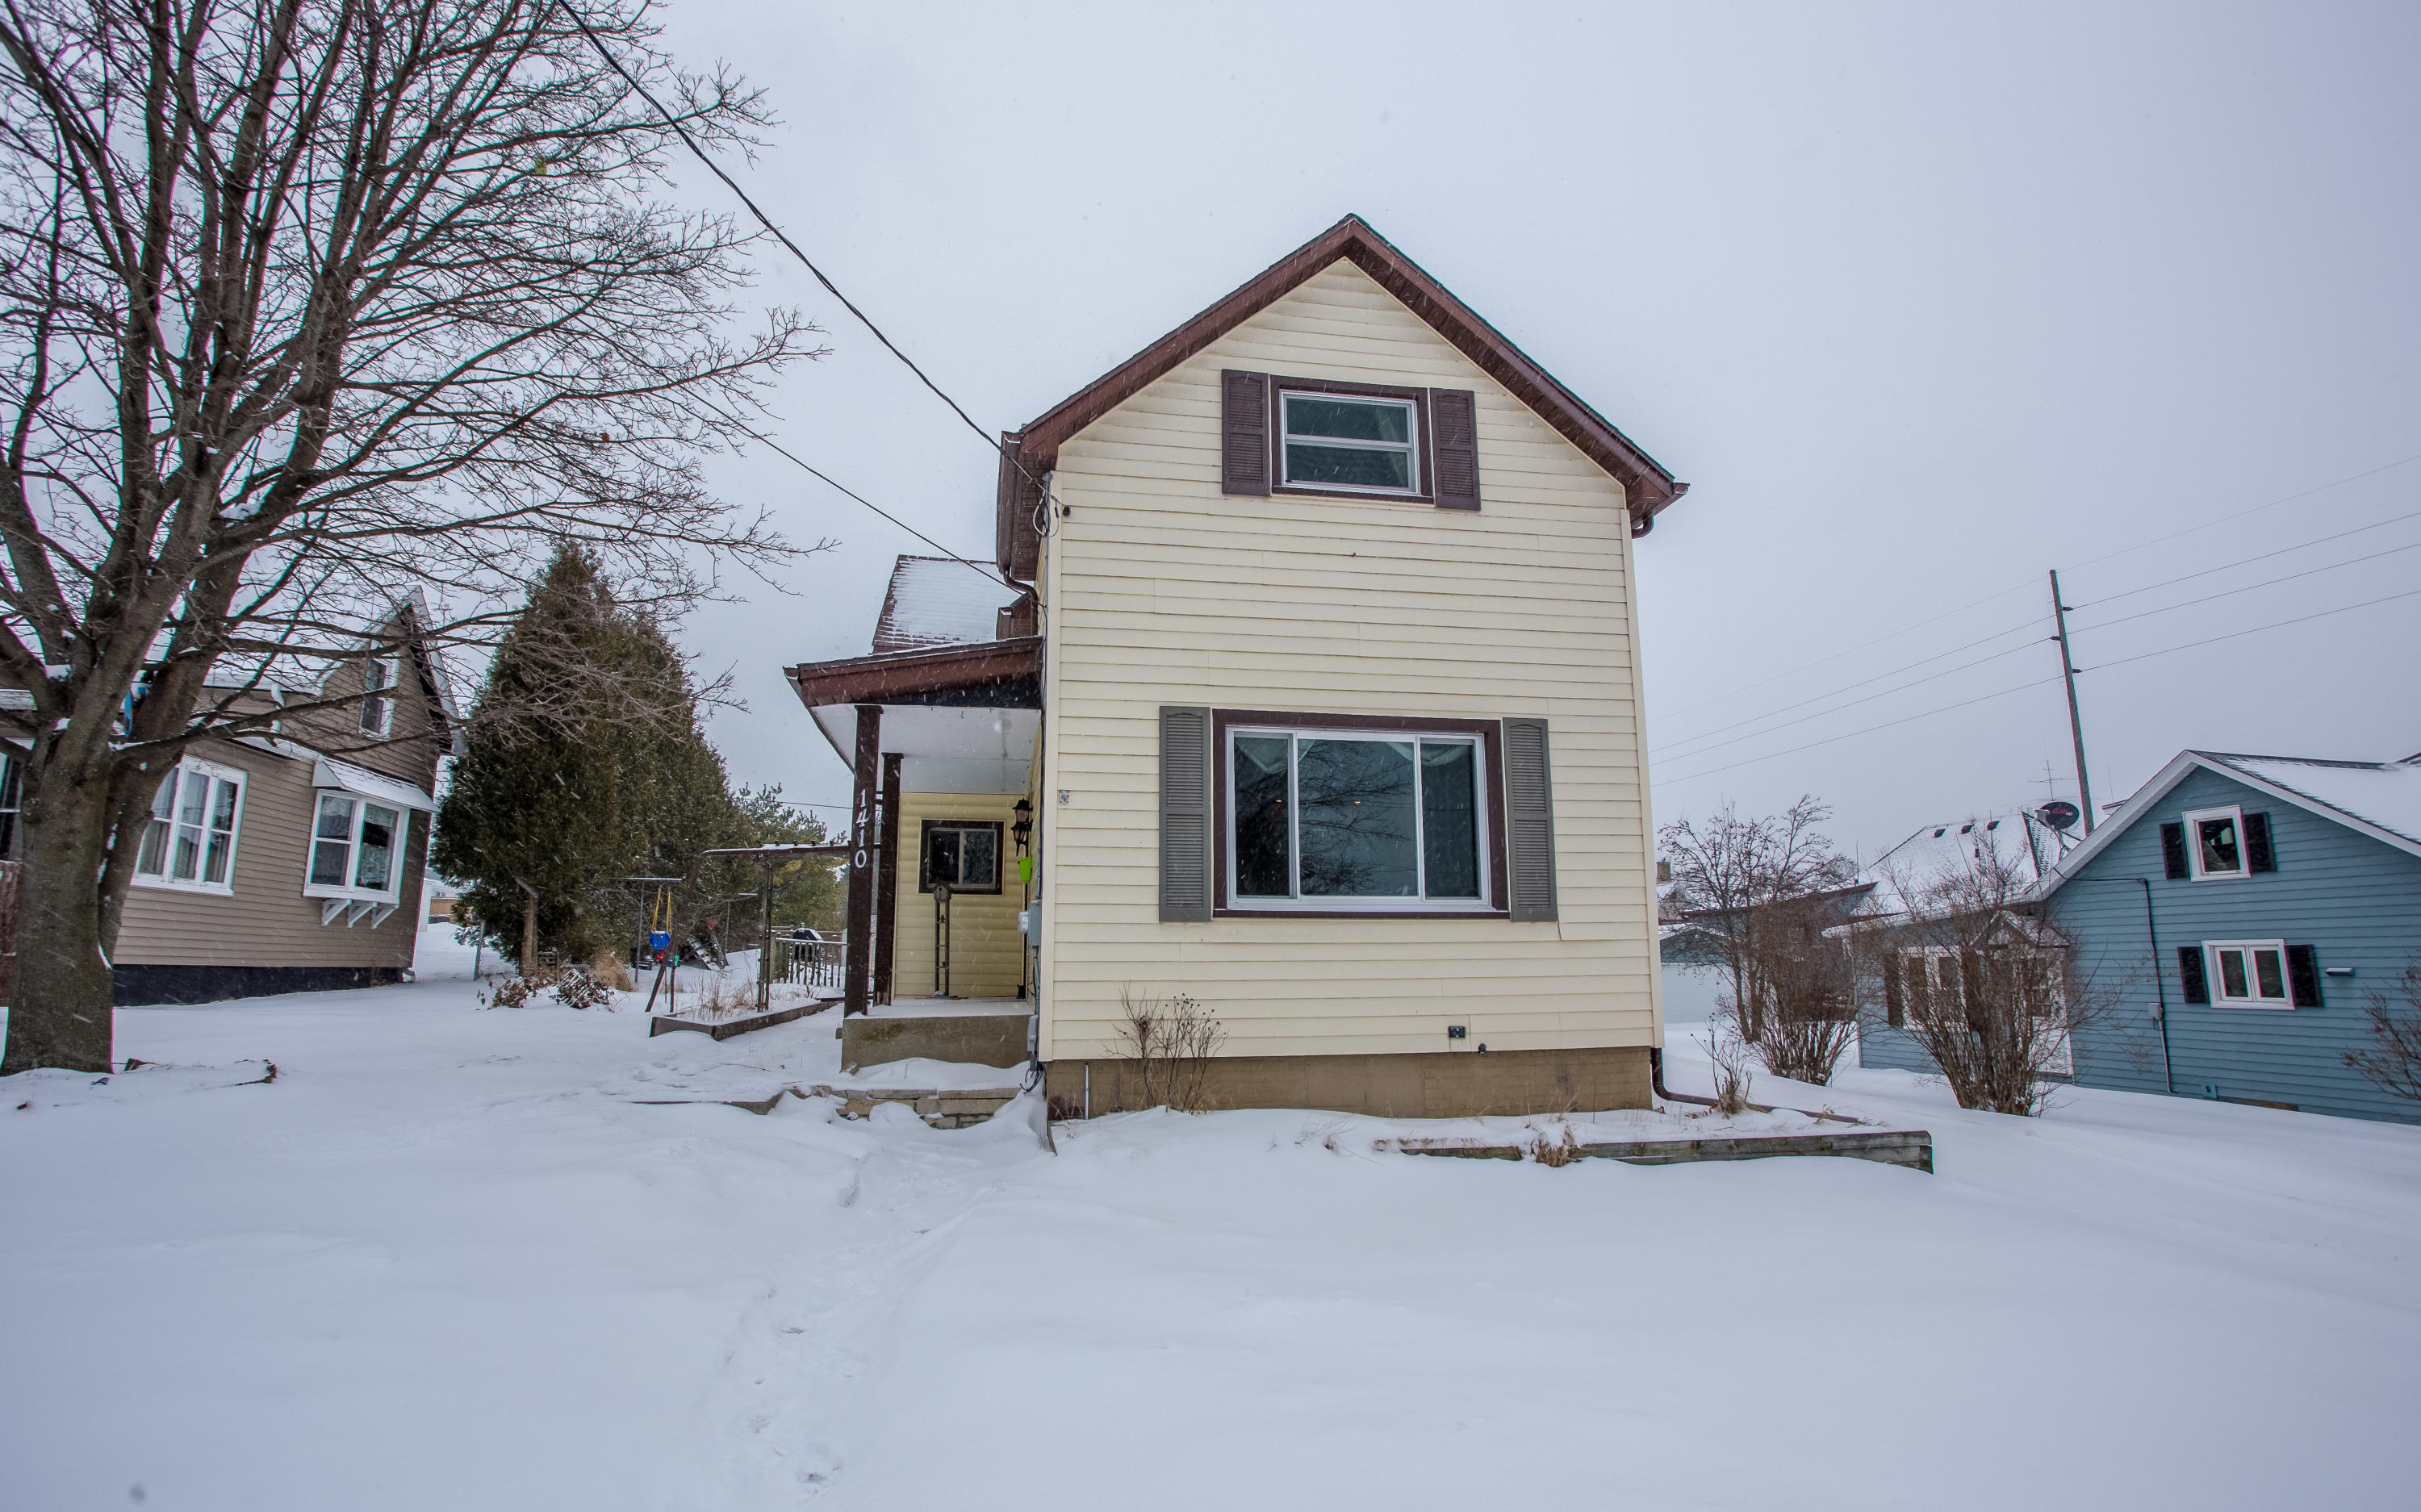 1410 11th St, Manitowoc, Wisconsin 54220, 2 Bedrooms Bedrooms, 5 Rooms Rooms,2 BathroomsBathrooms,Single-Family,For Sale,11th St,1622480